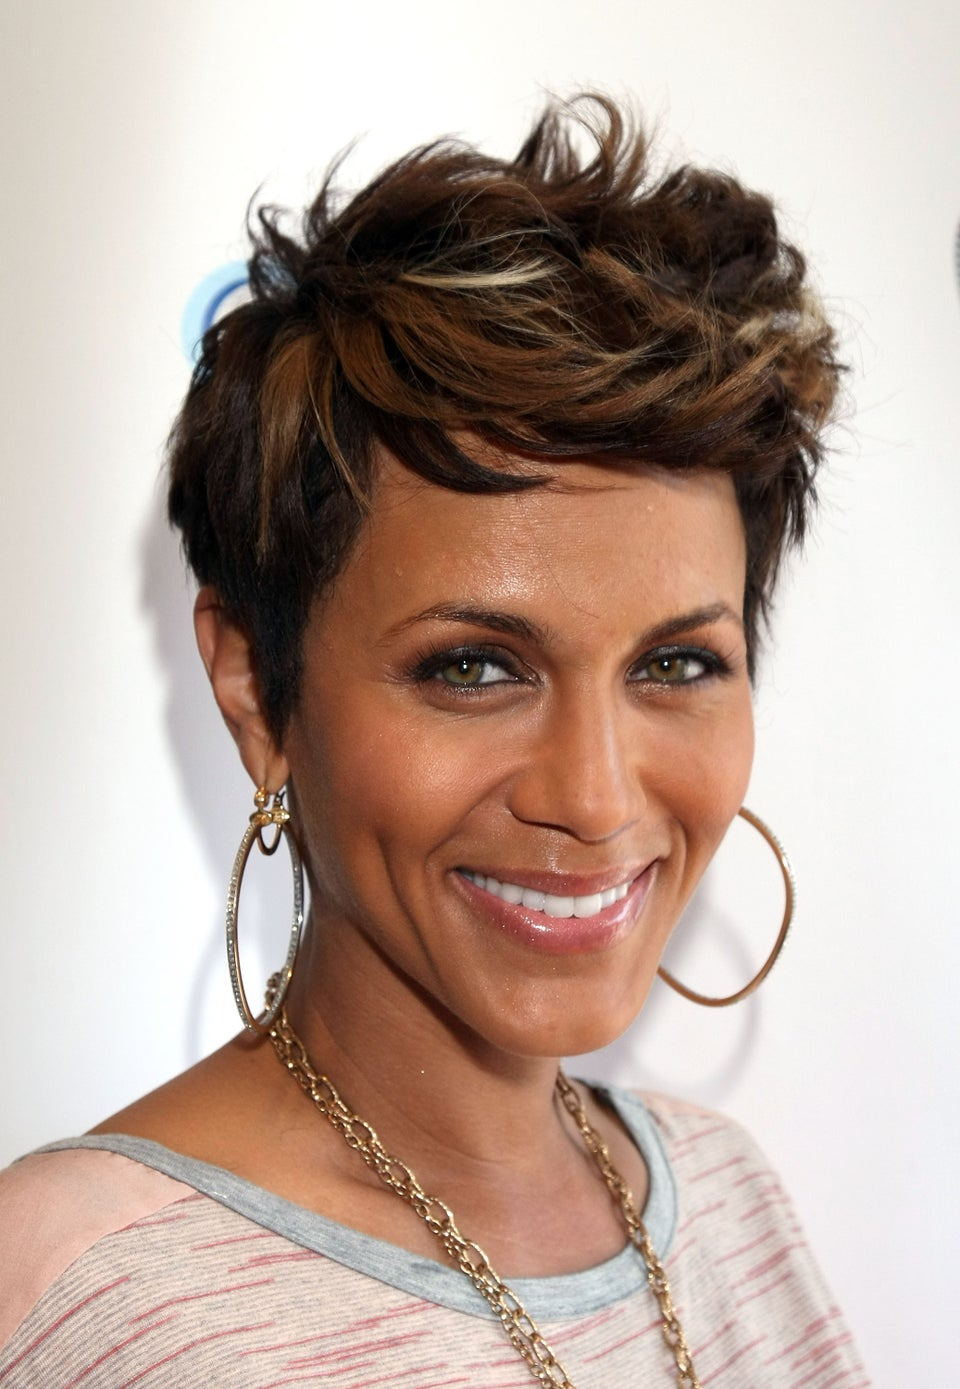 Nicole Ari Parker Takes the Stage